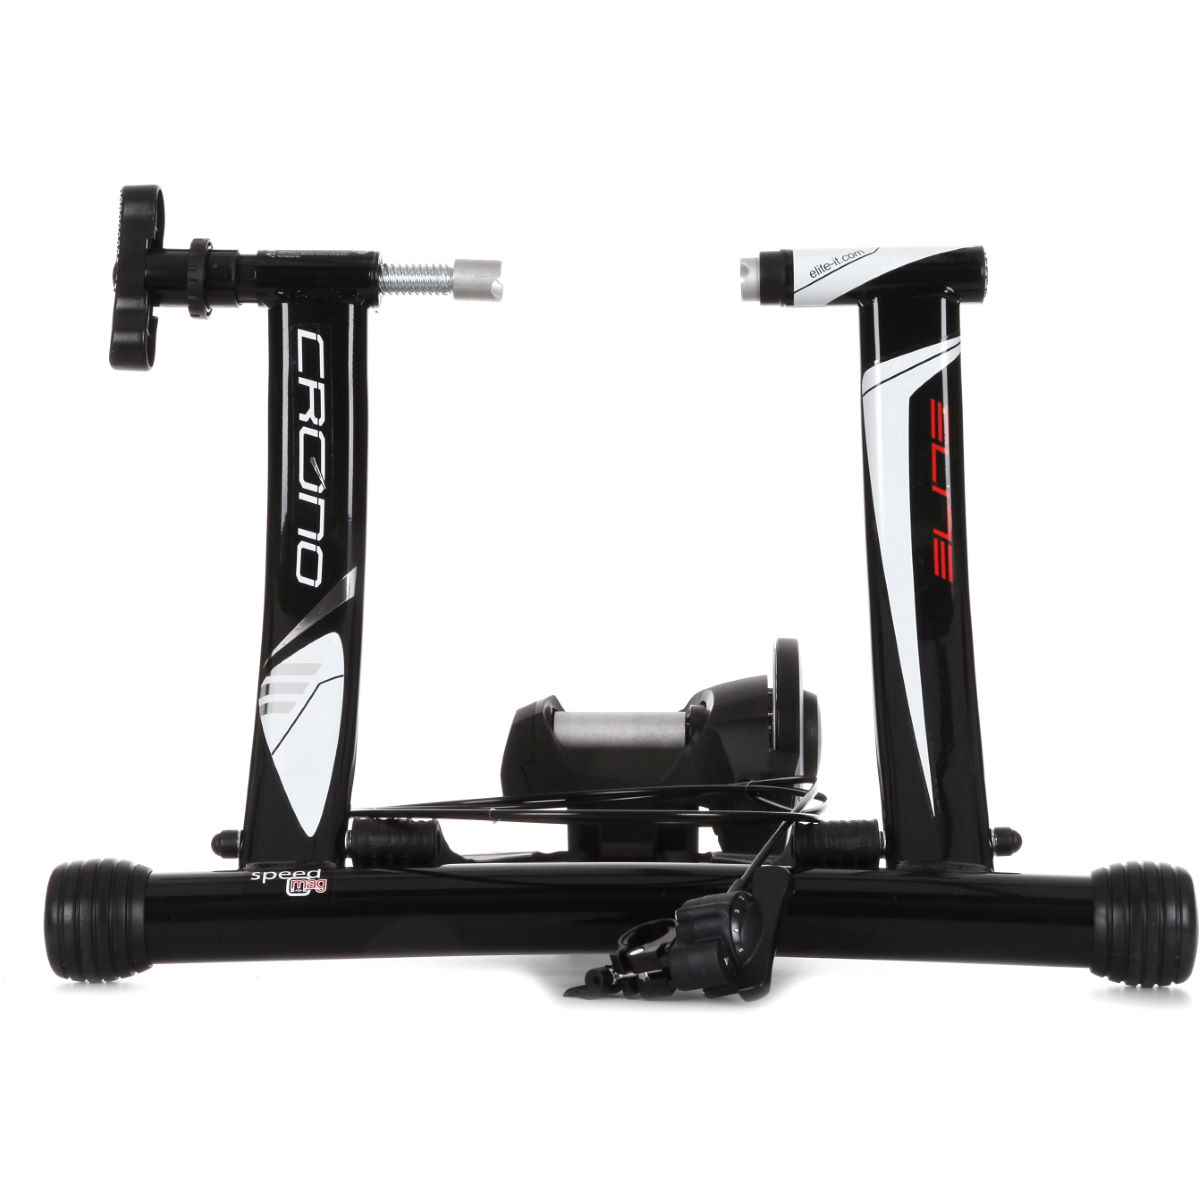 Elite Crono Mag Speed Alu Trainer Turbo Trainers Review